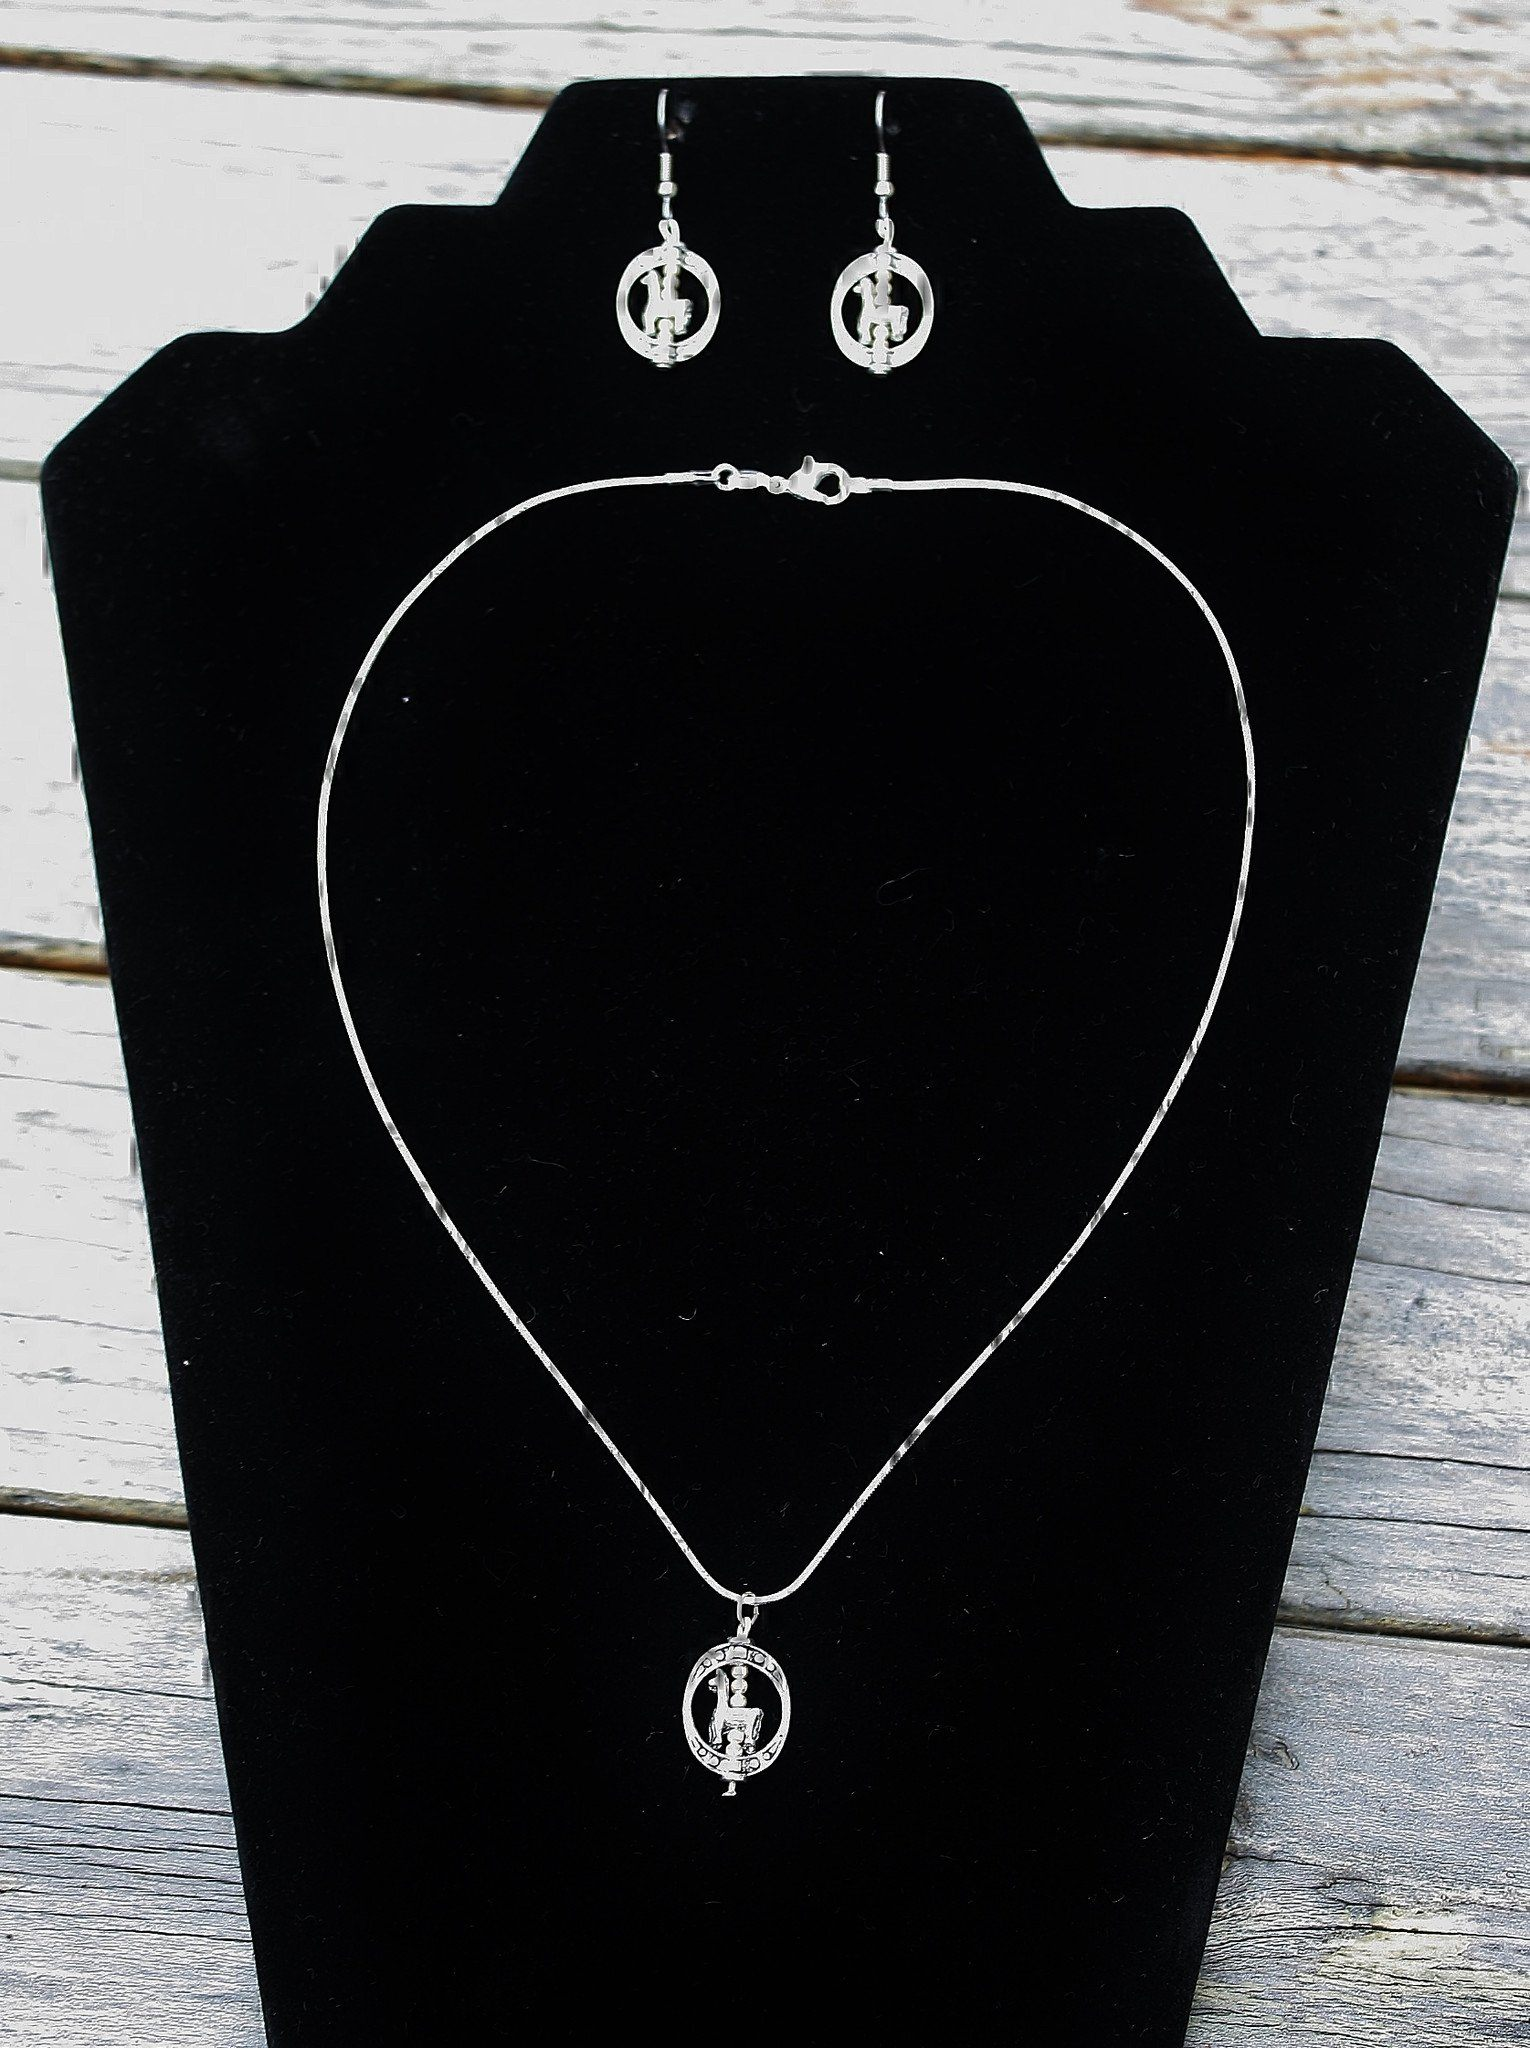 Alpaca Necklace and Earrings Set